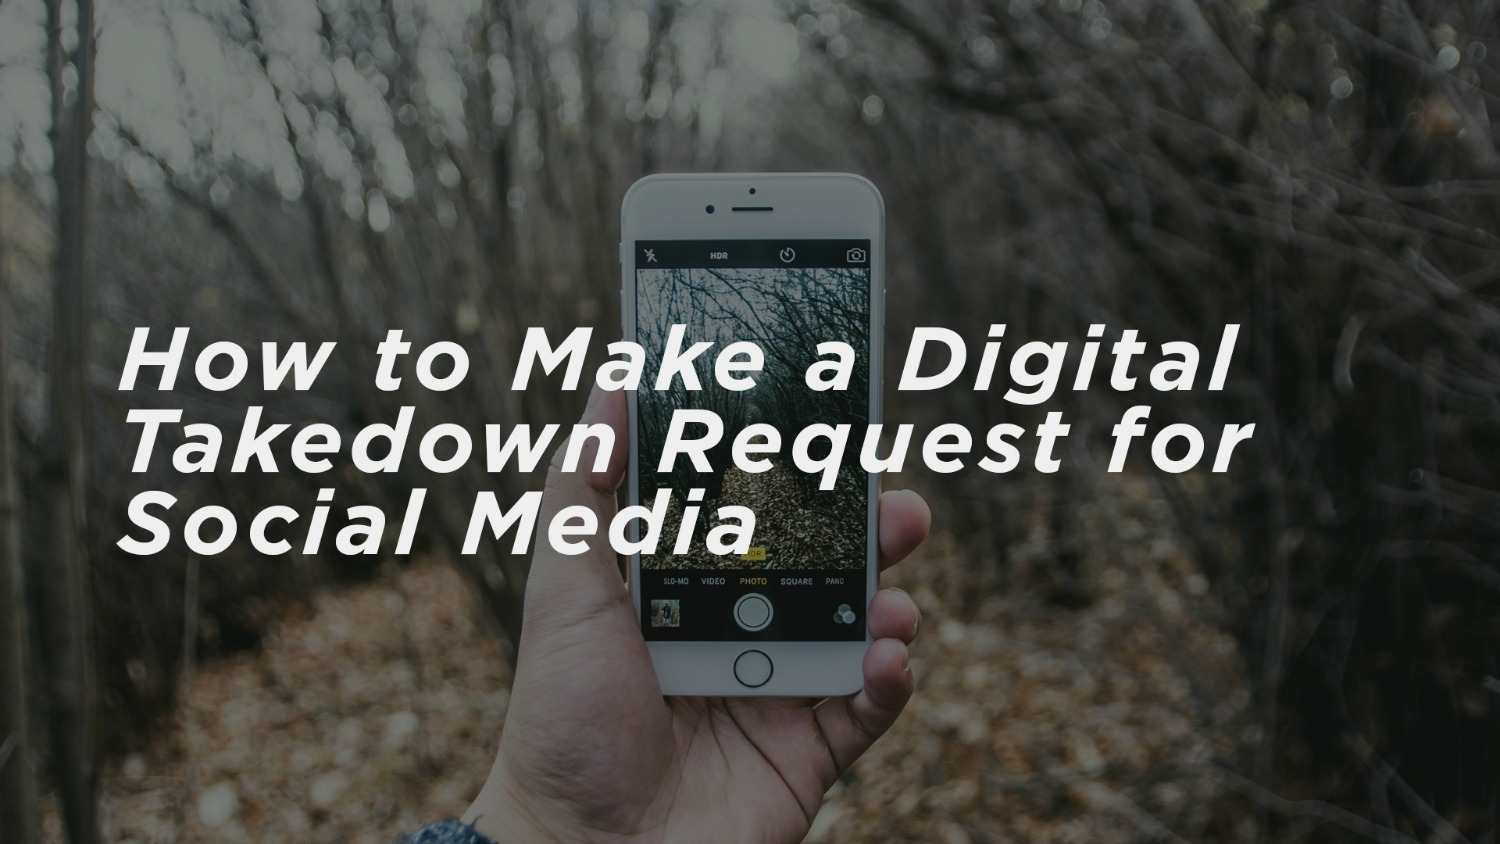 How to Make a Digital Takedown Request for Social Media